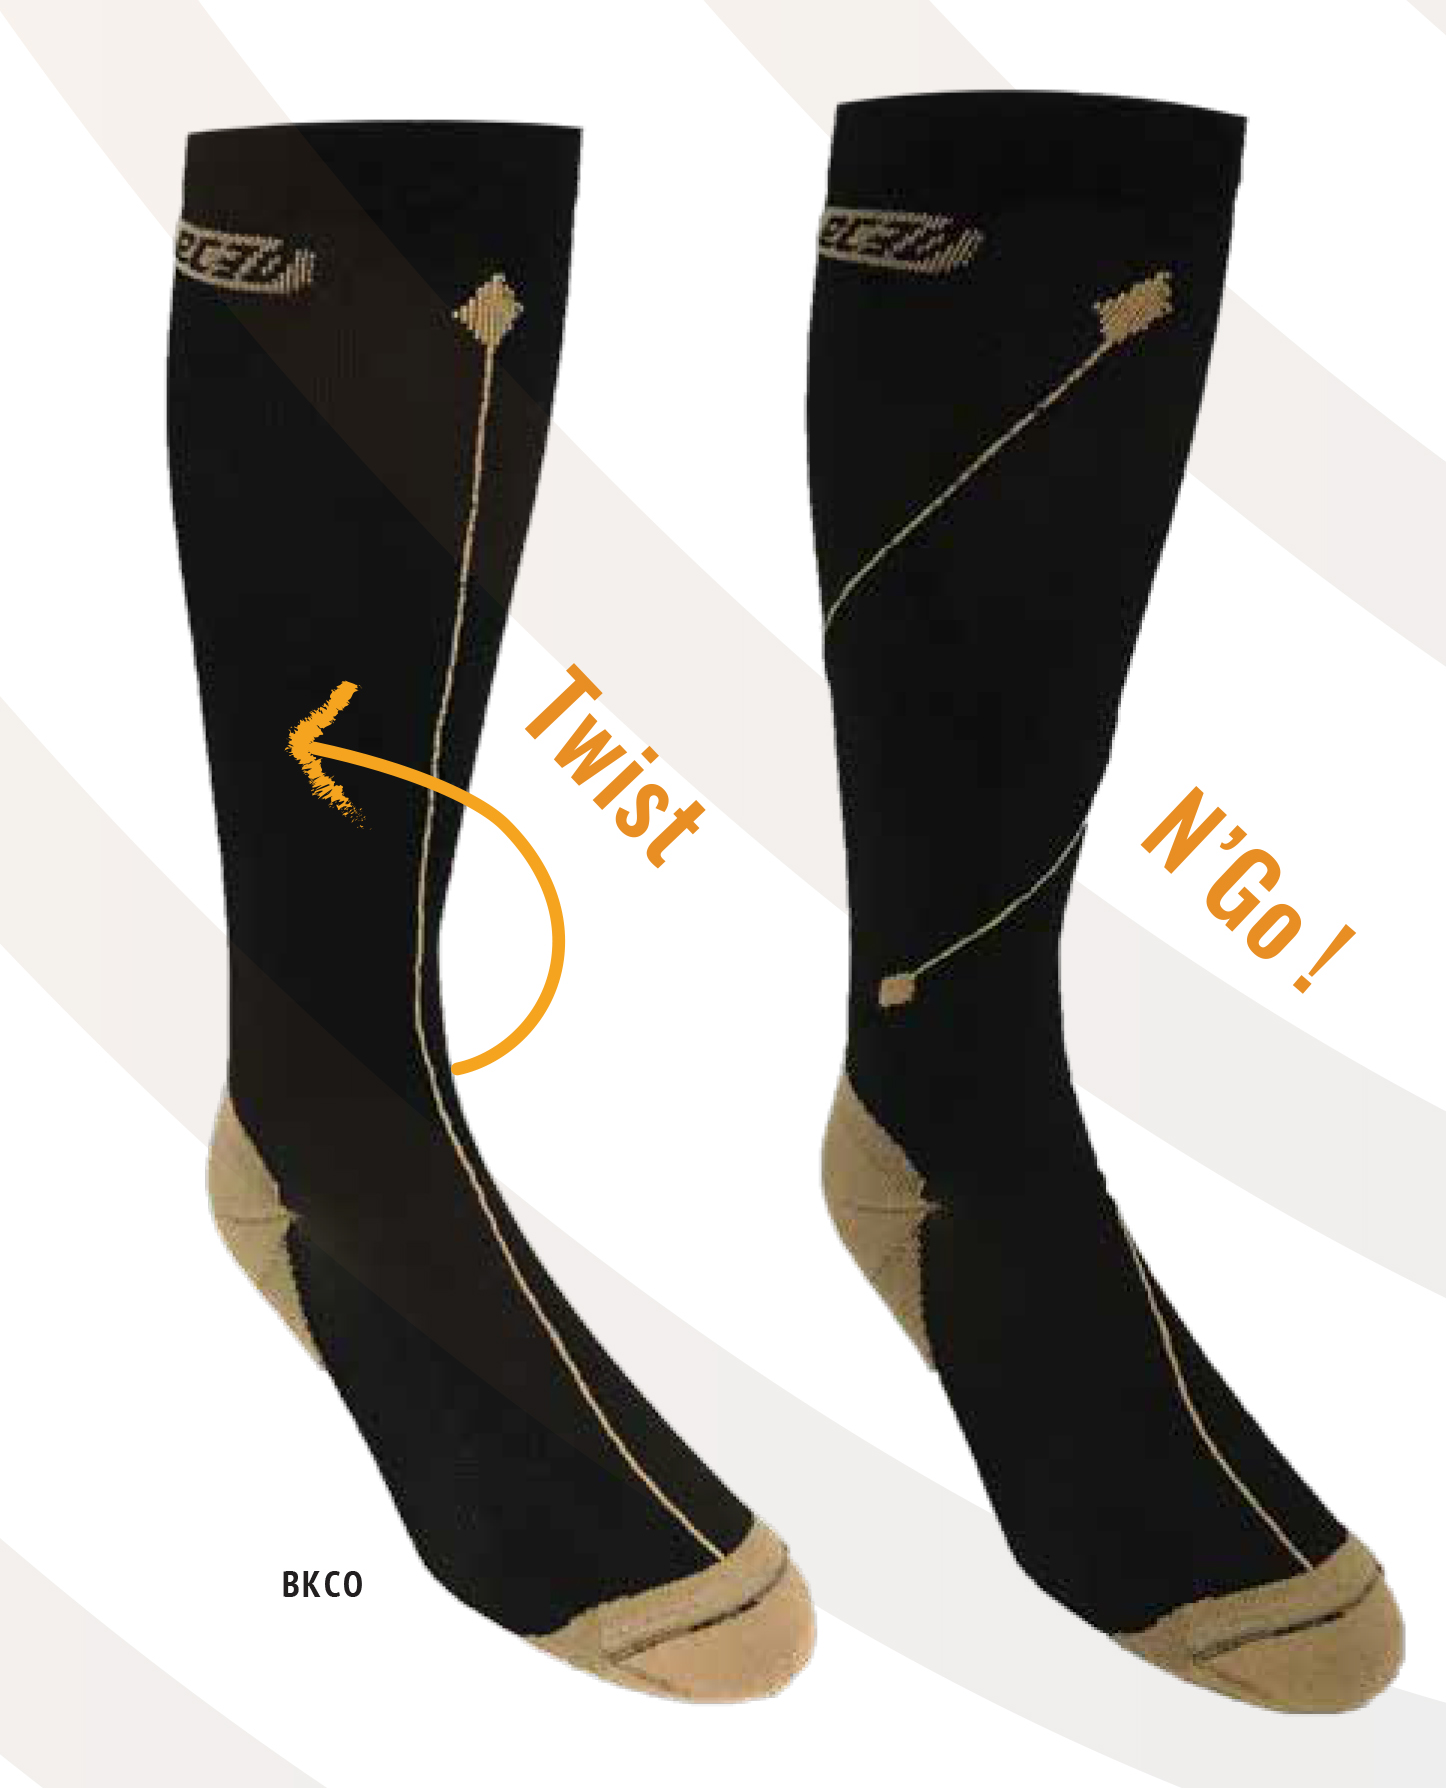 6420ea7520 Talar has partnered with EC3D to bring you the latest in compression socks.  What makes them different from all the other compression socks on the  market?